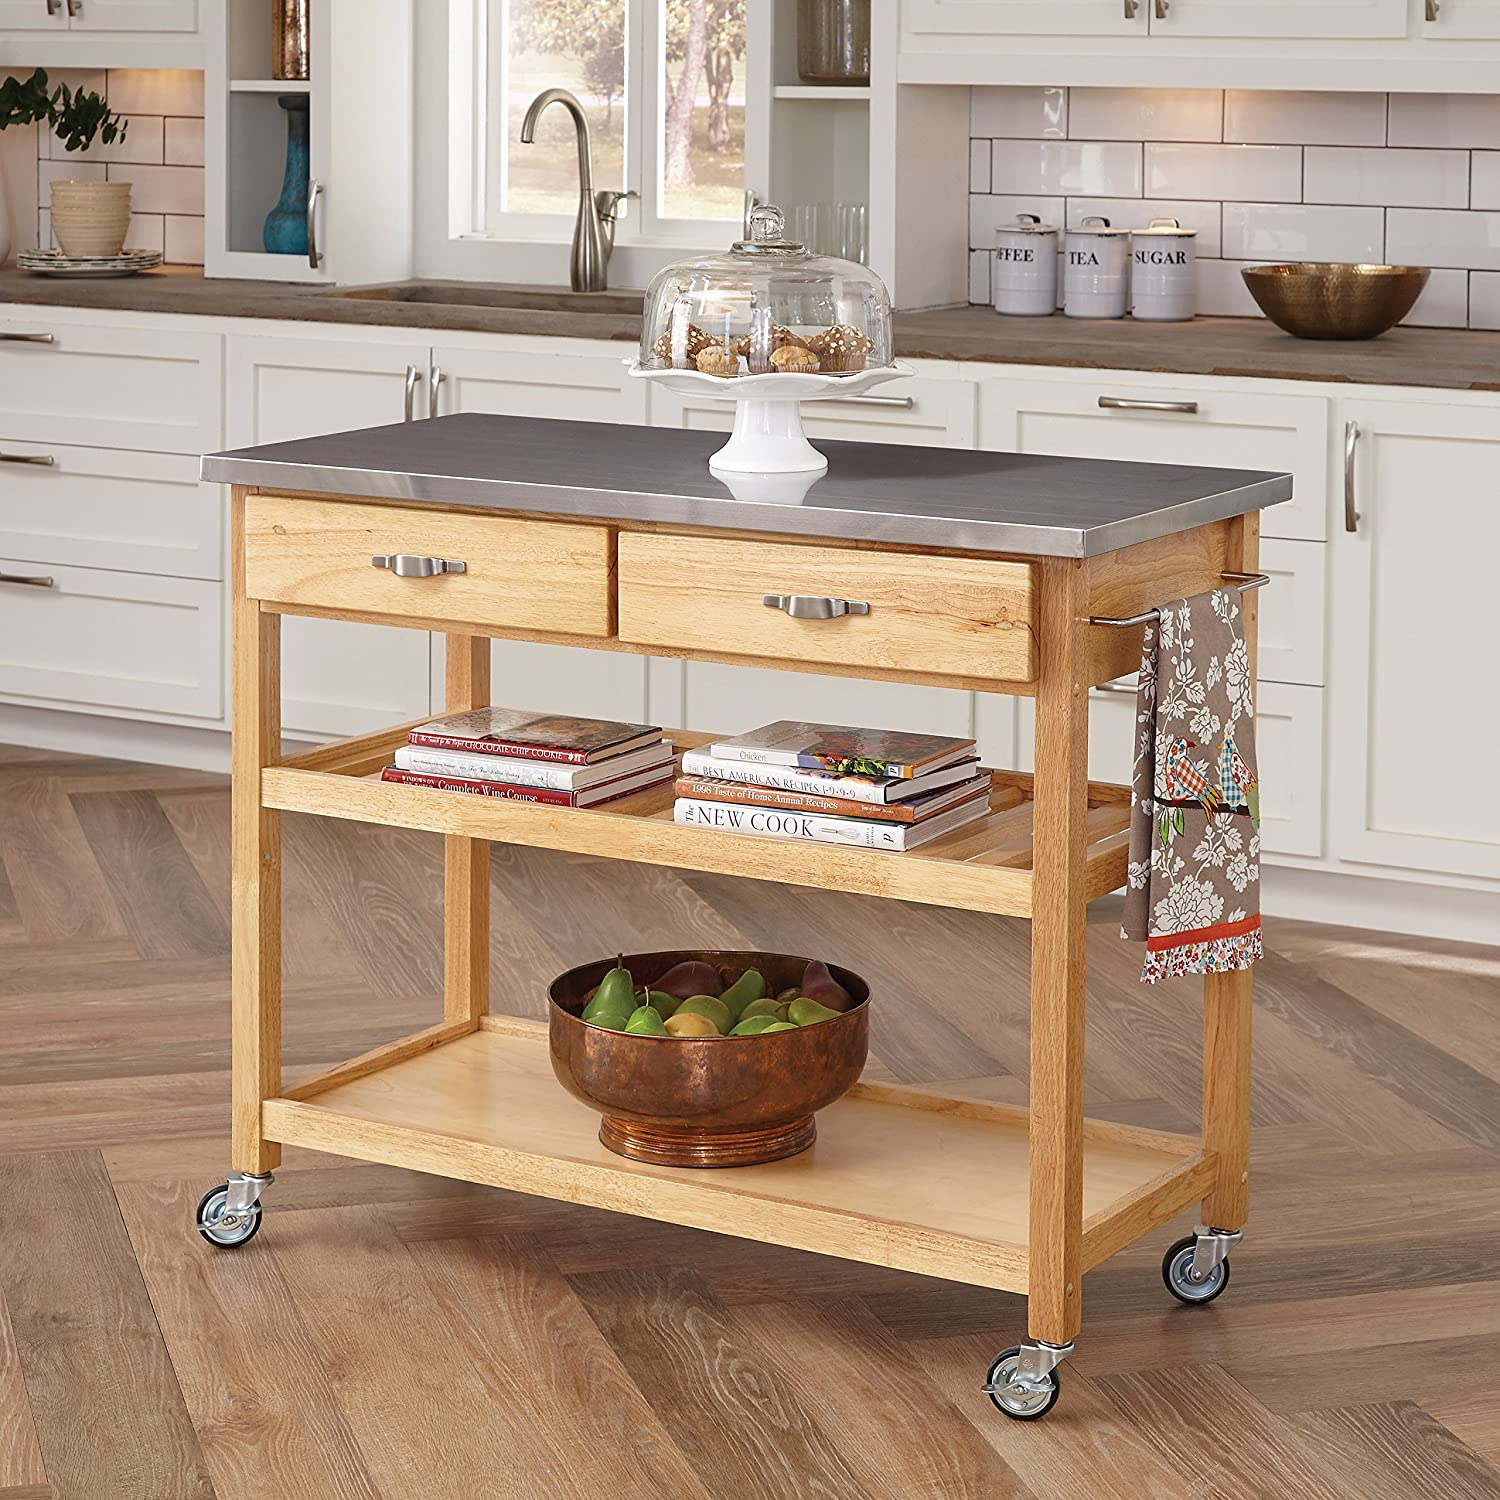 Amazoncom Home Styles Natural Designer Utility Cart With Stainless - Stainless steel table top shelves